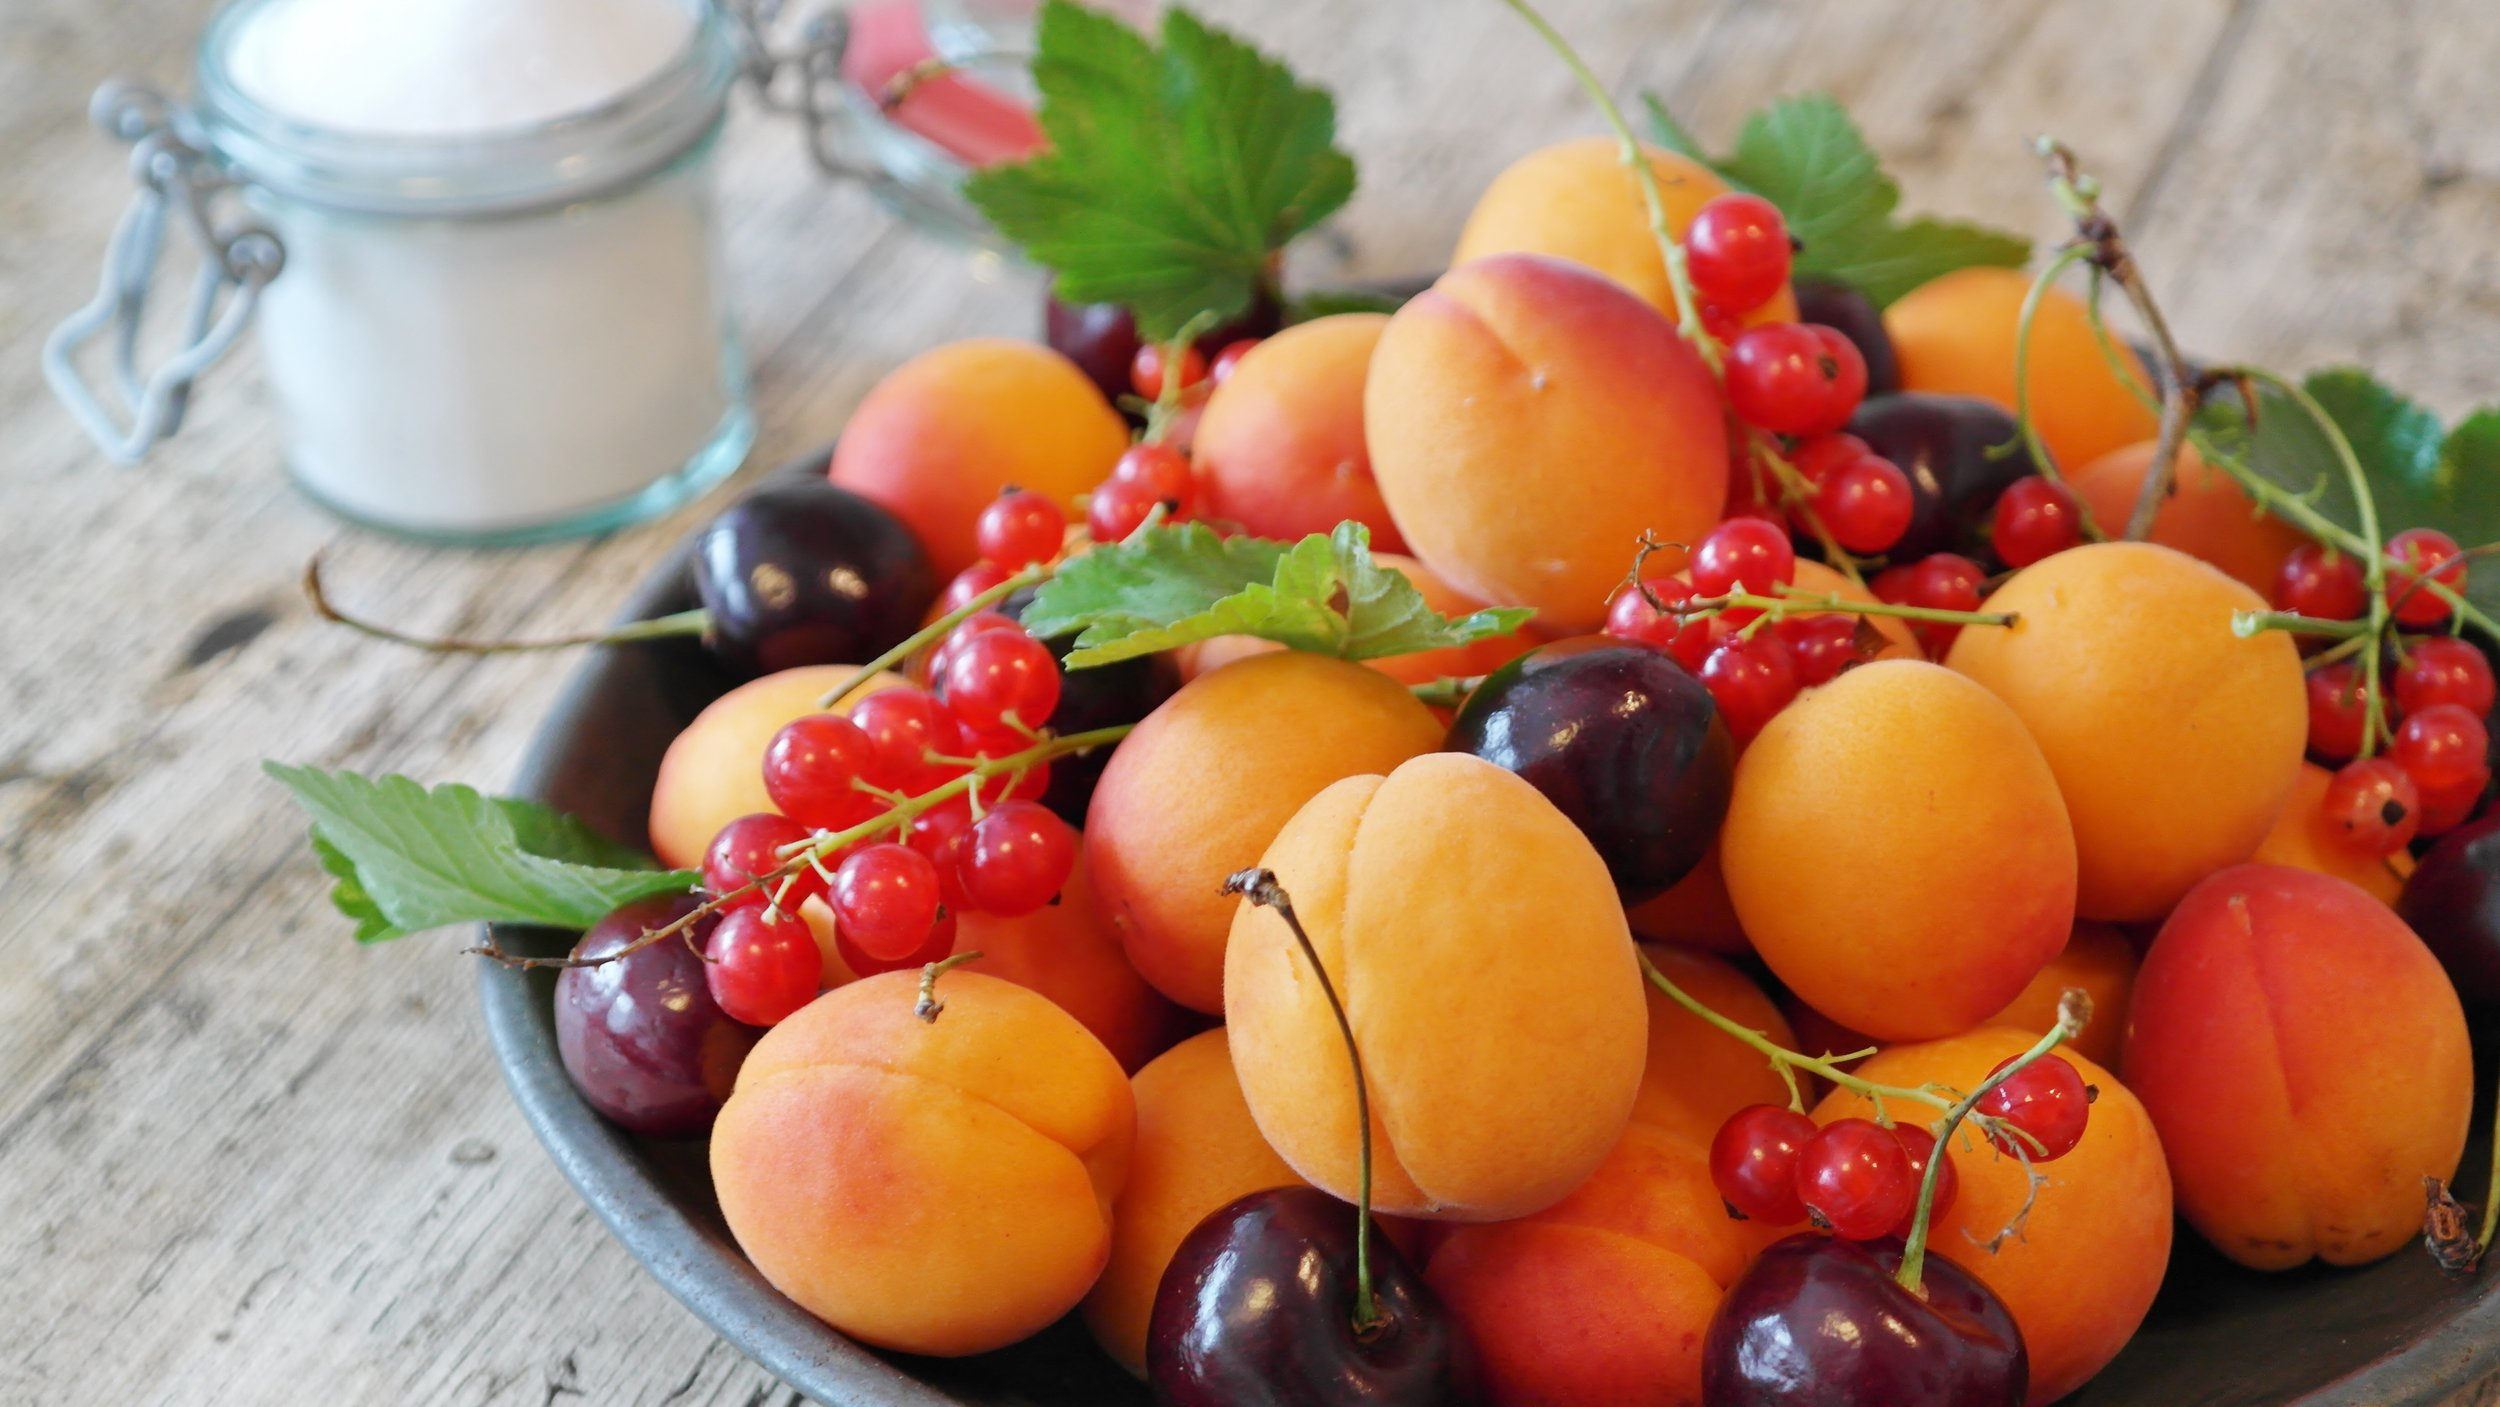 A platter of fresh apricots, cherries and red currants on a rustic wooden table